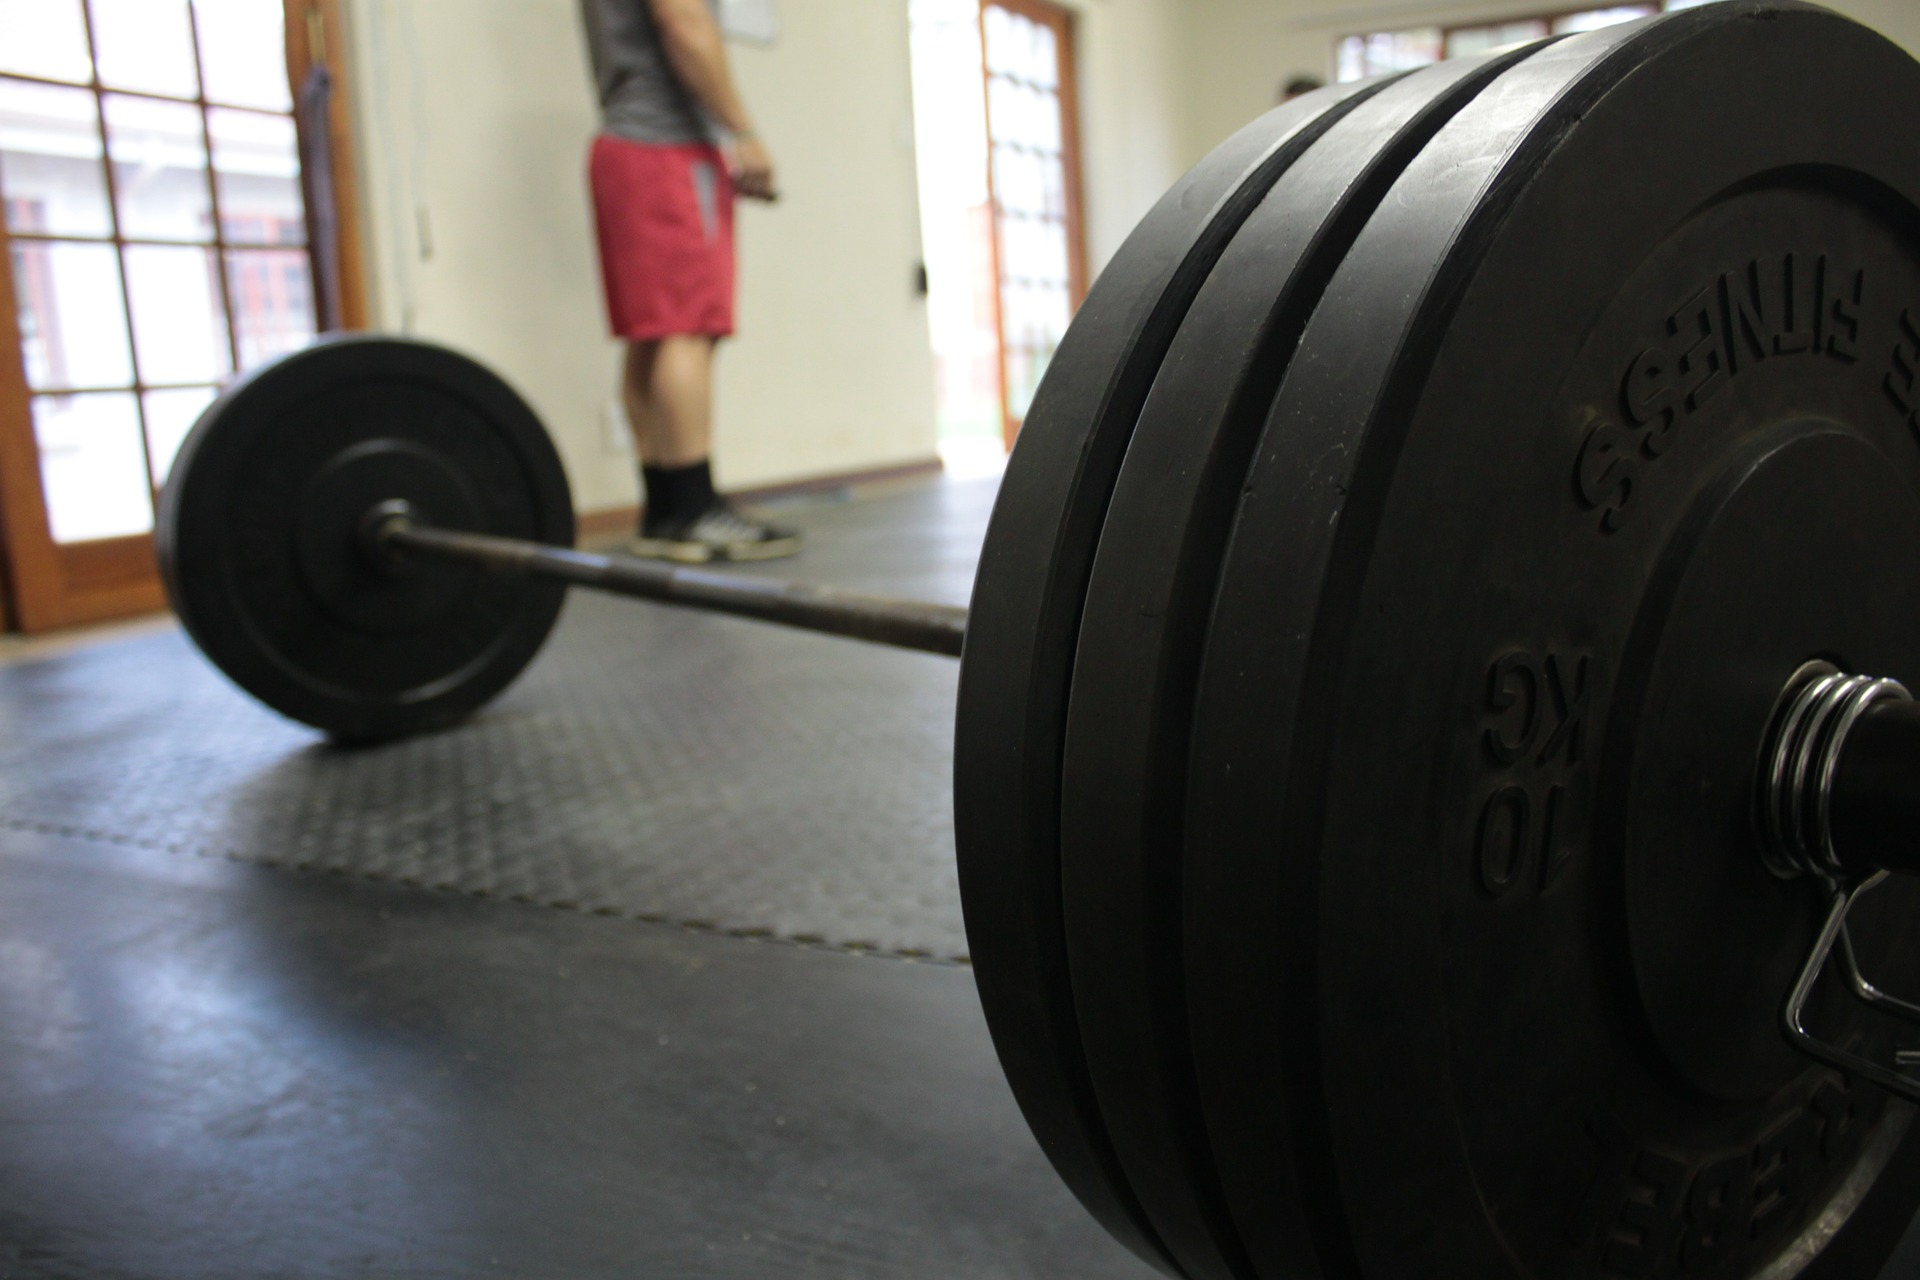 Resistance Band Training Versus Weight Training Part 1